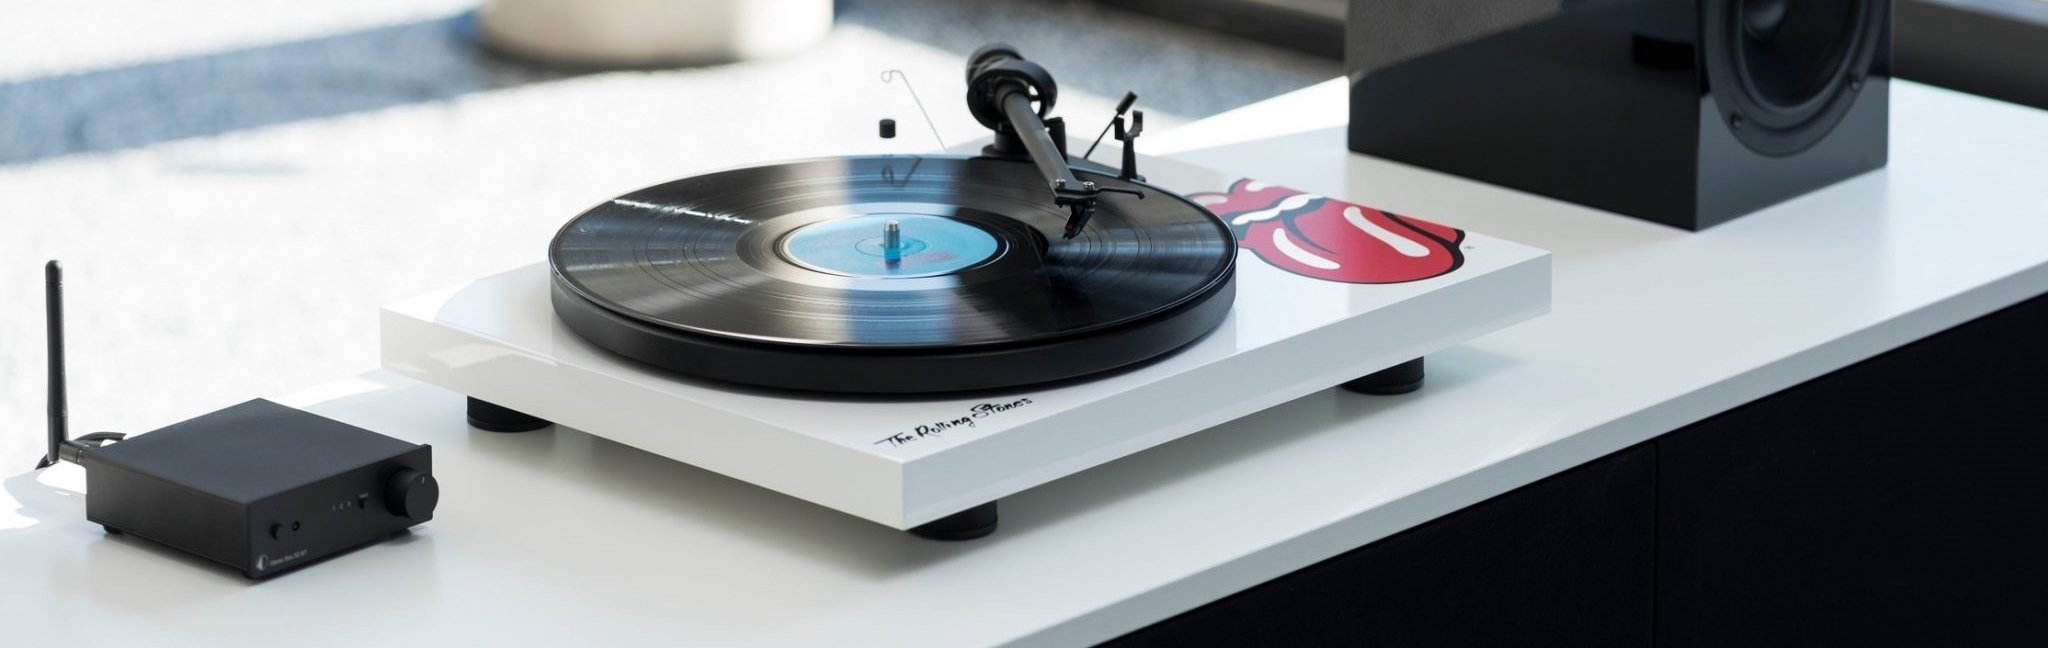 Best Record Players and Turntables